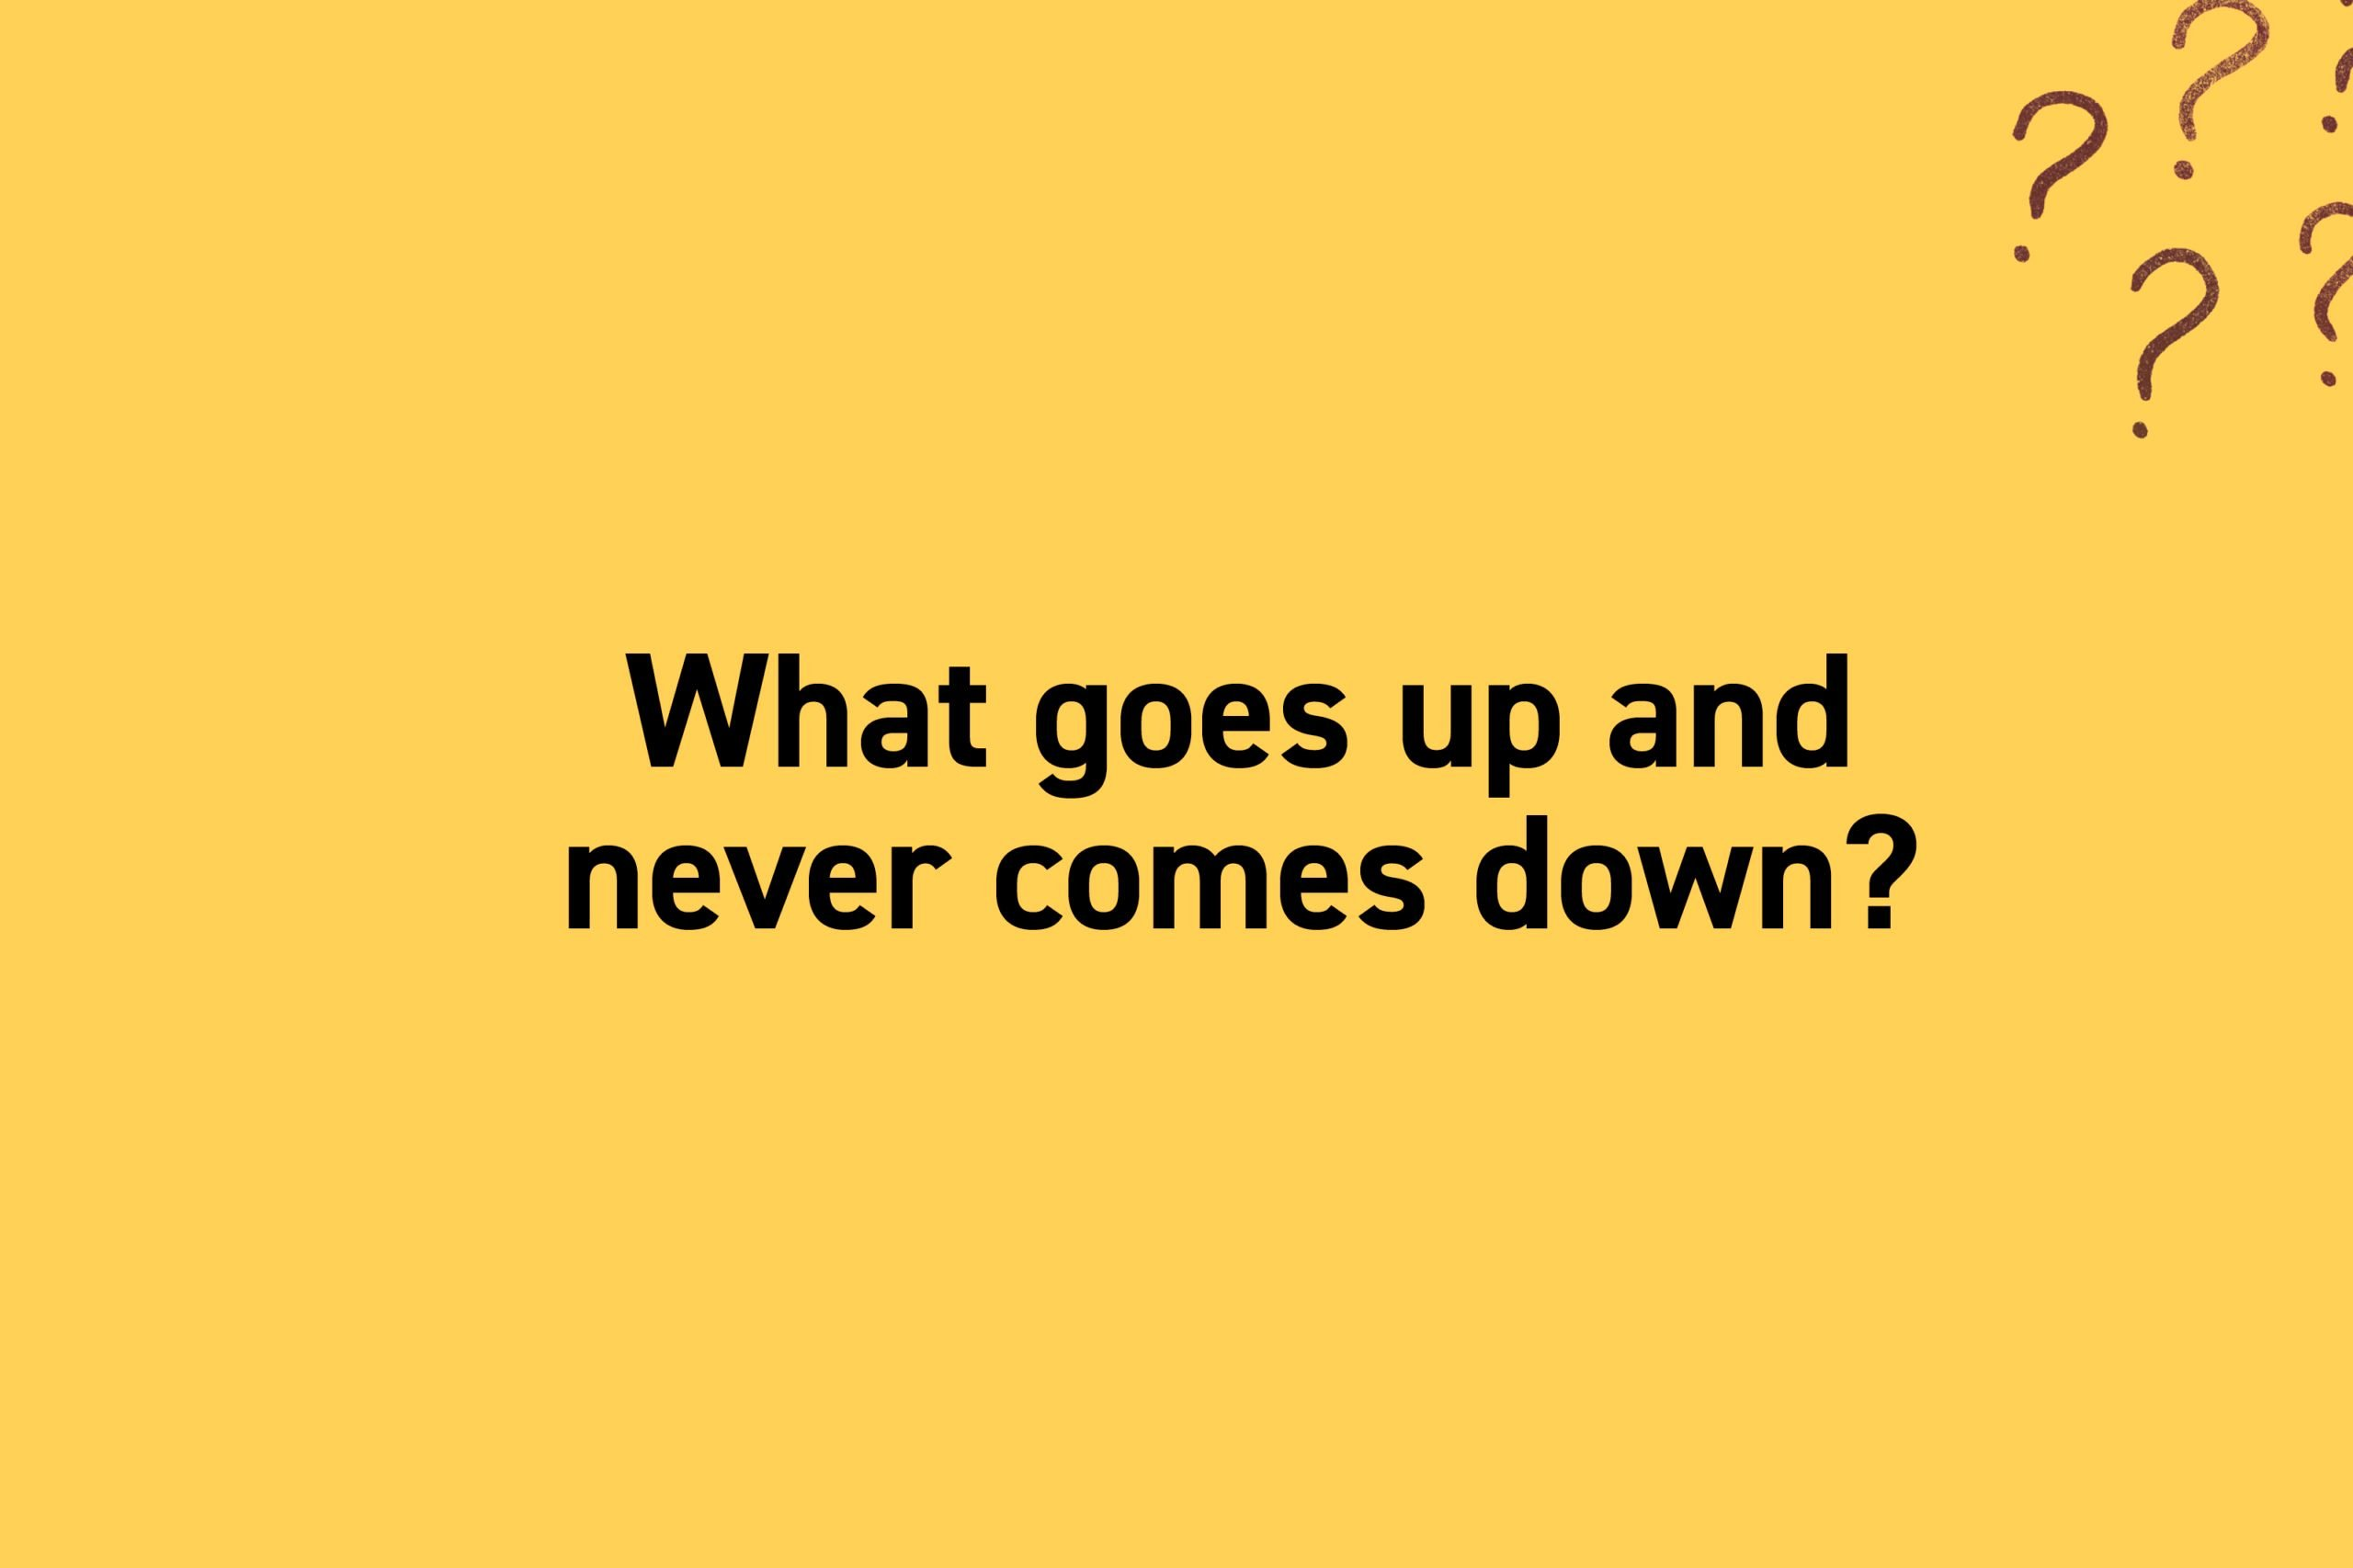 What goes up and never comes down?